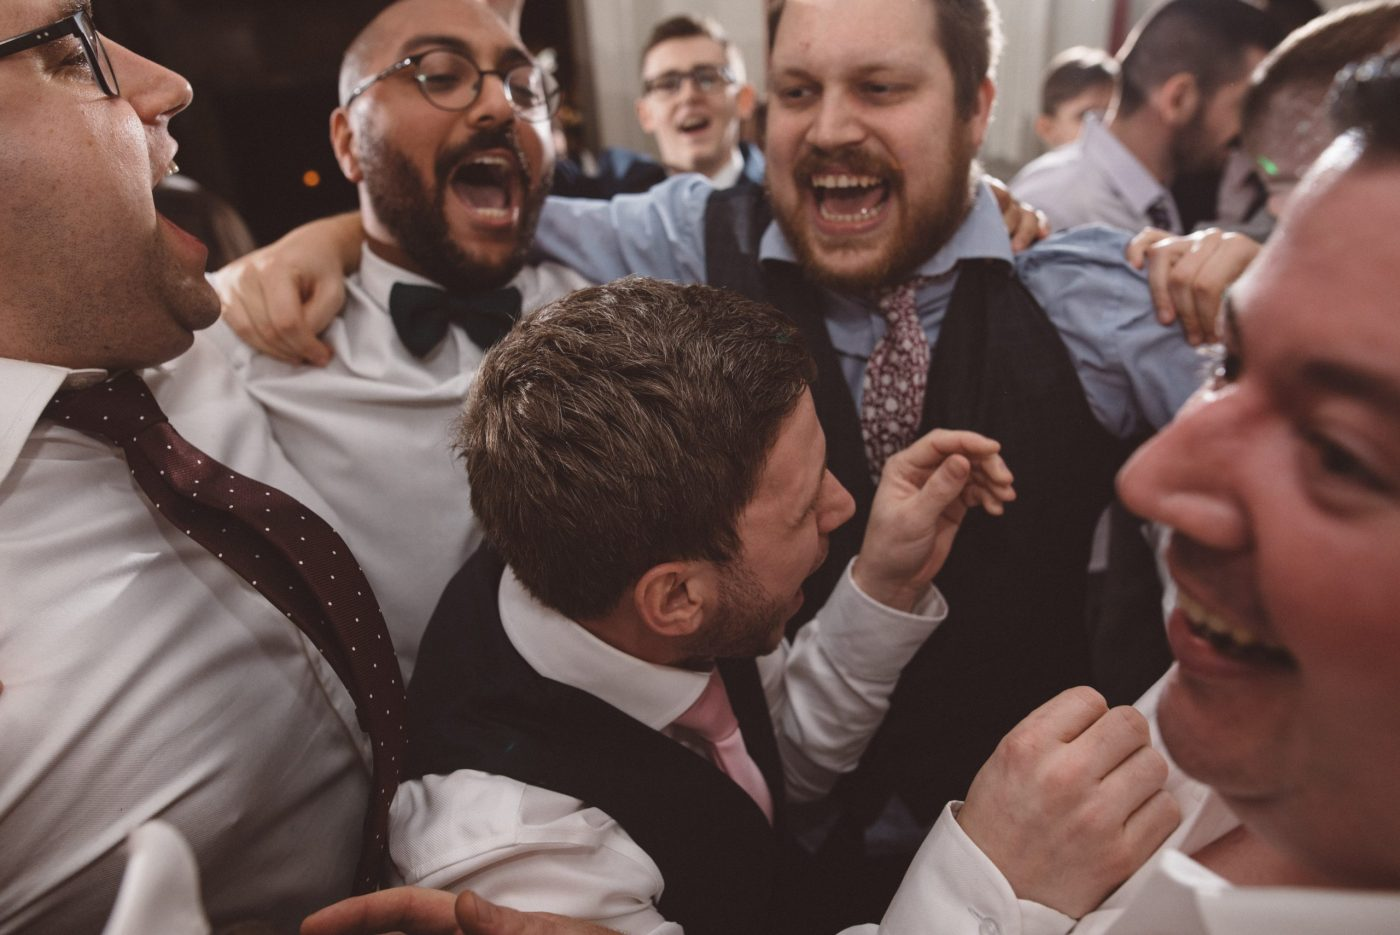 Mosh pit at a gosfield hall wedding